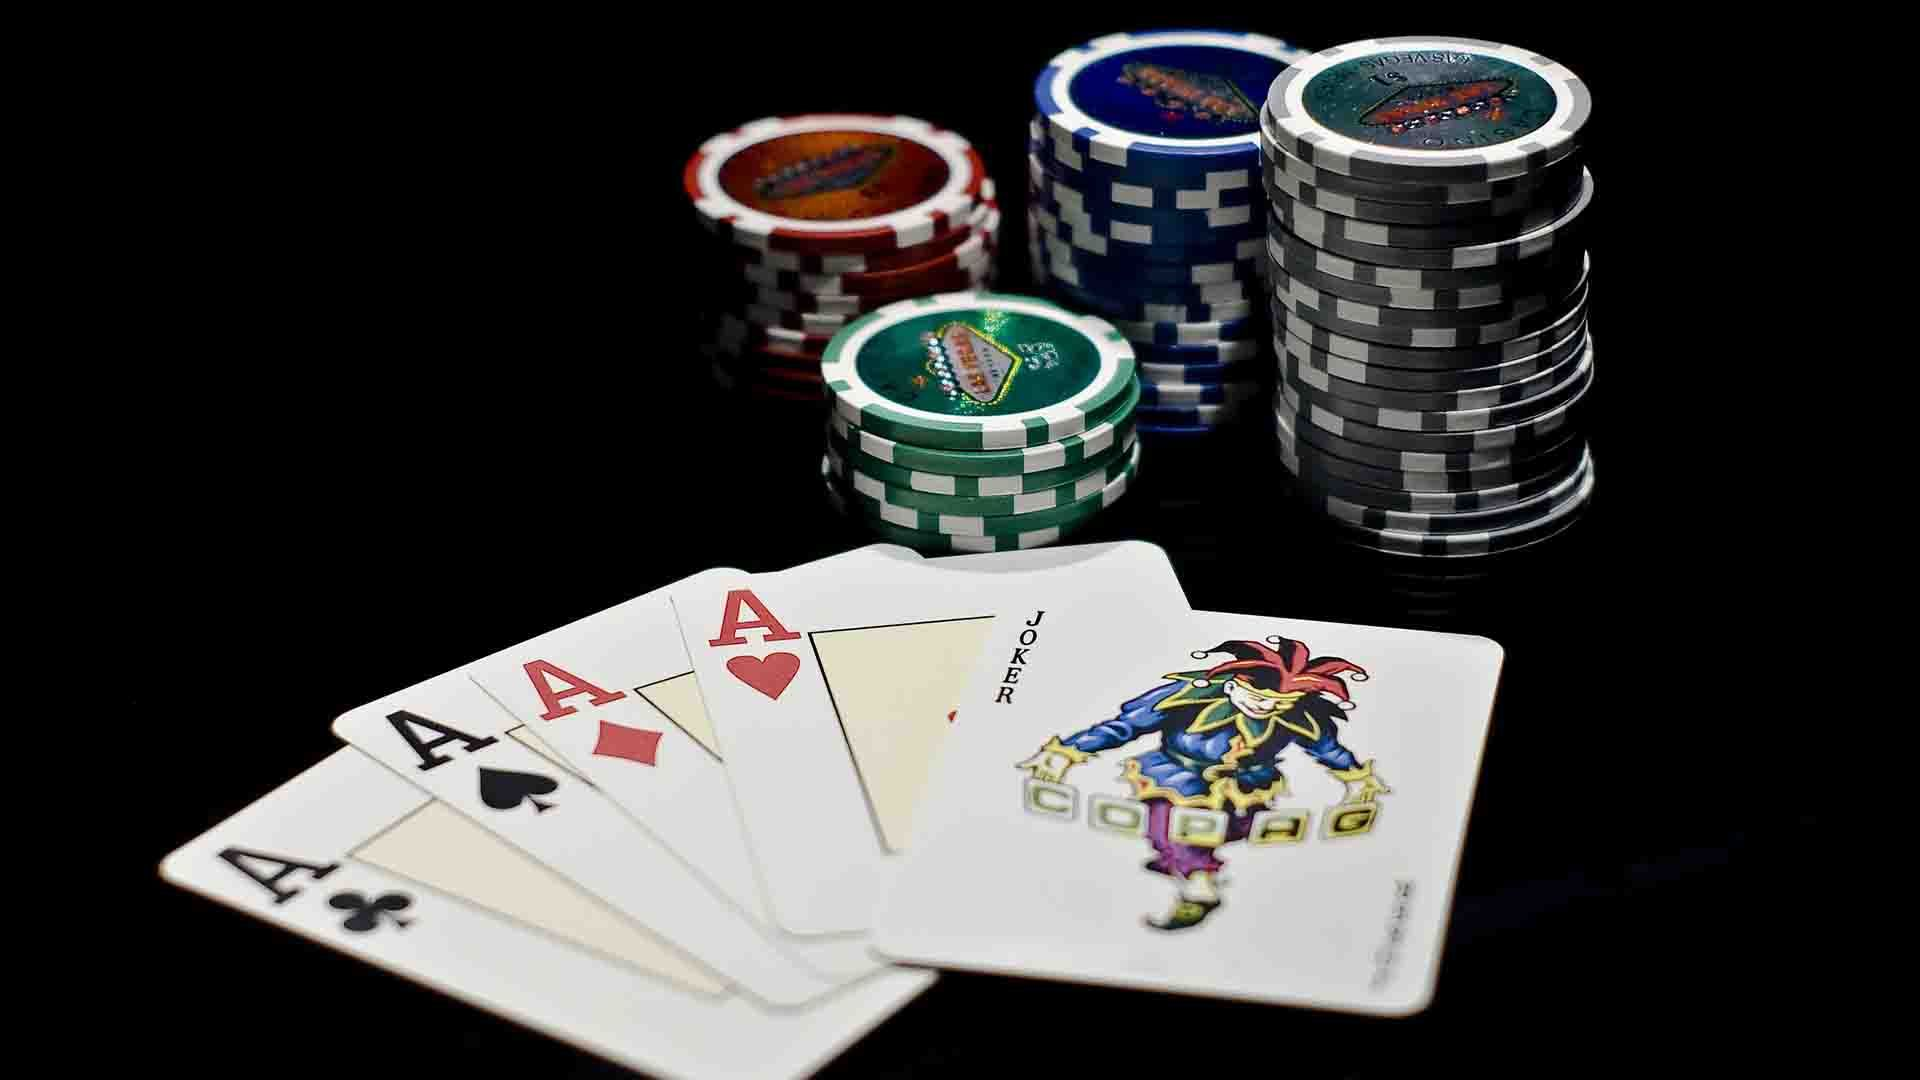 Things to be kept in mind while playing online poker